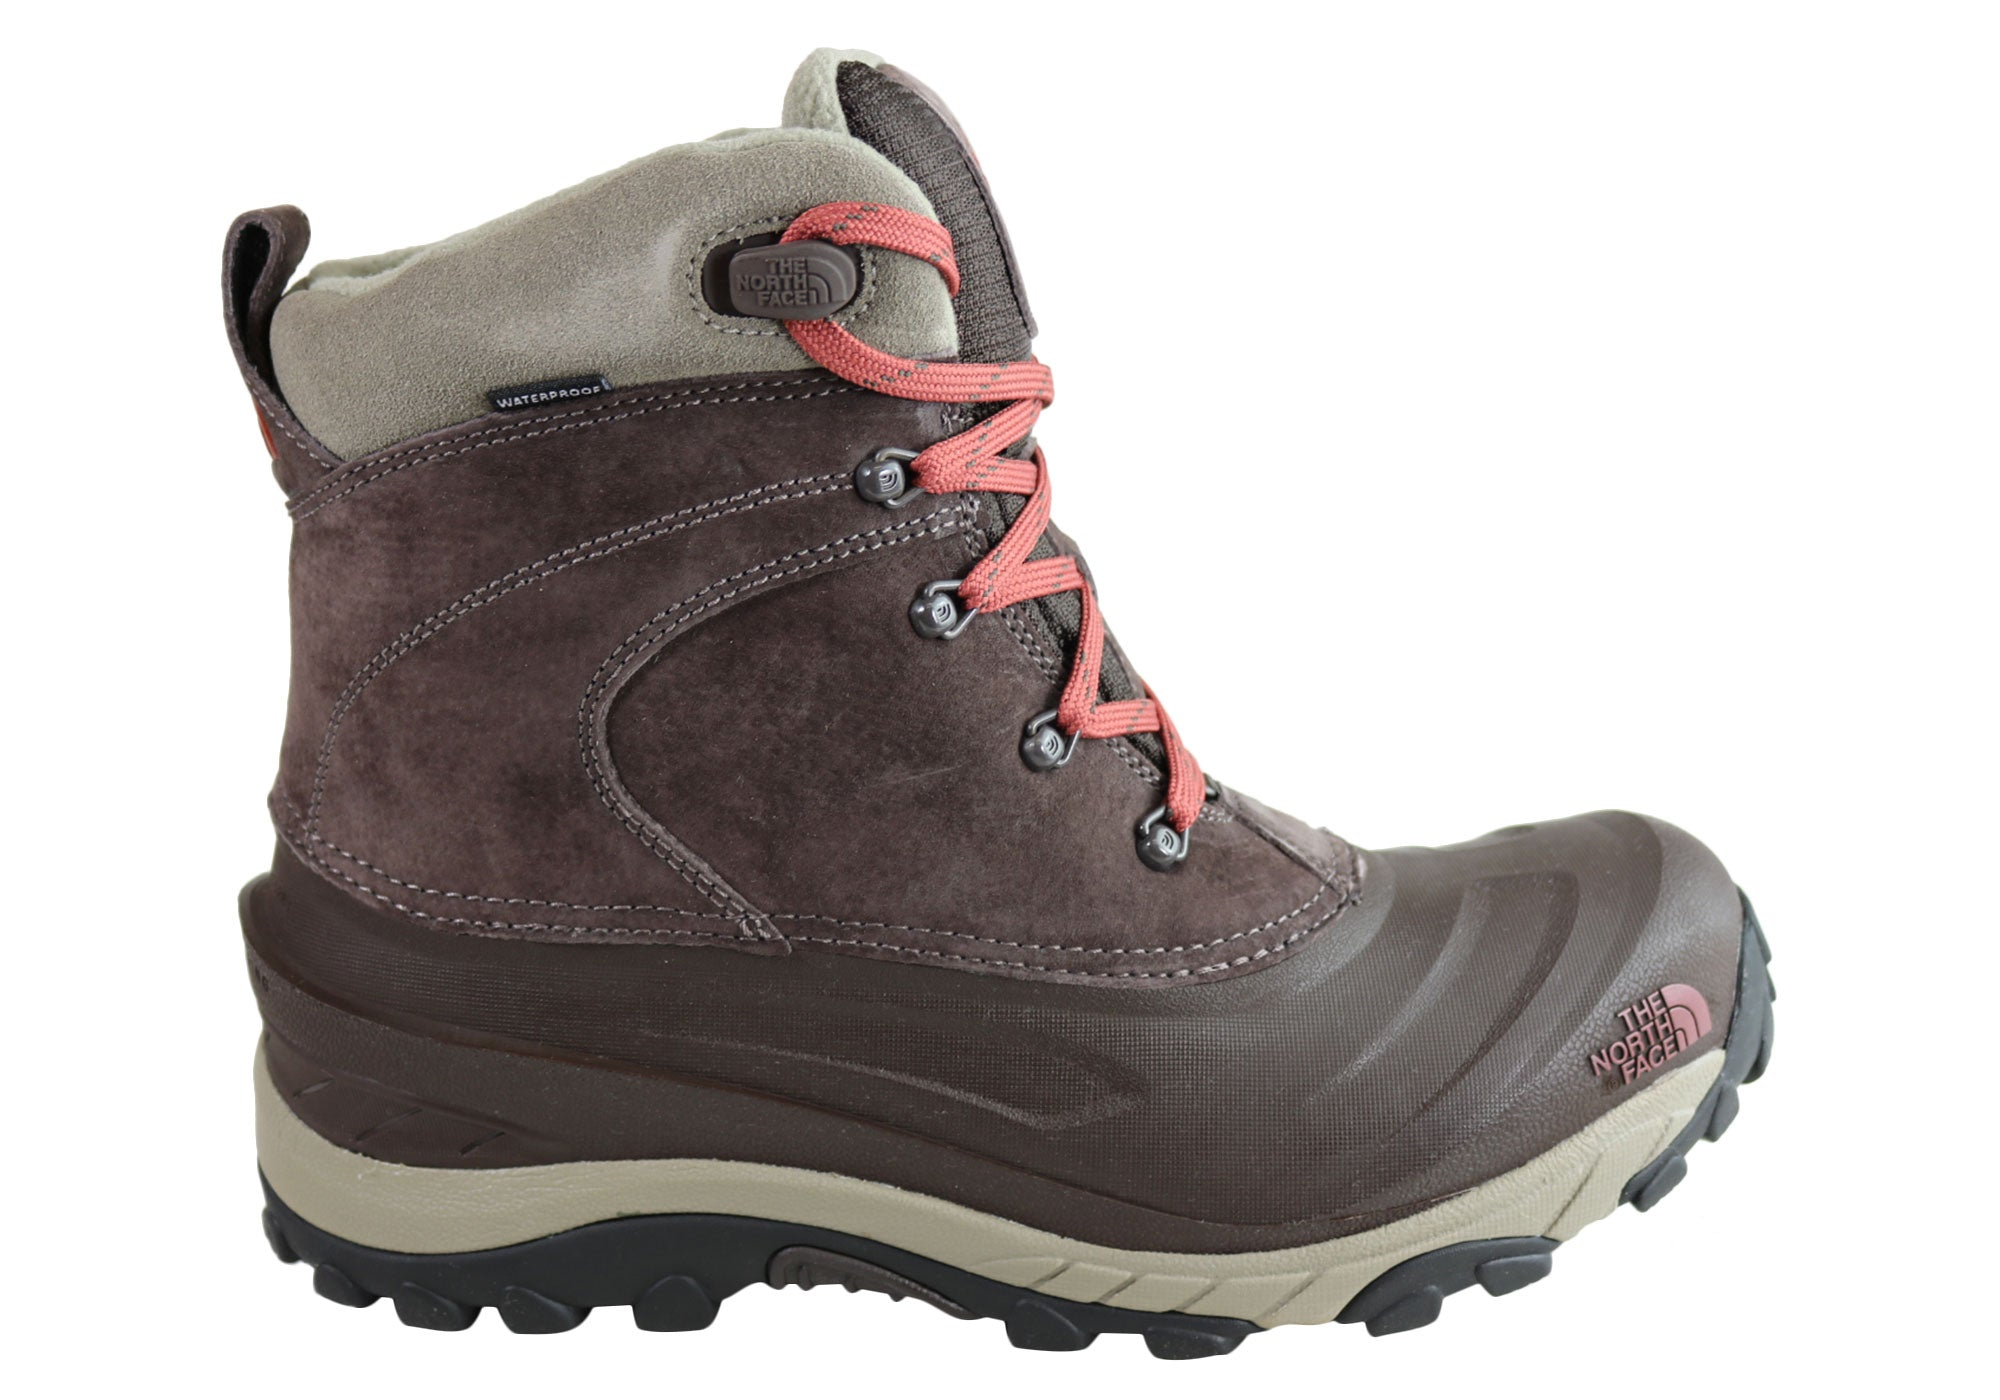 659d80ffb05f The North Face Mens Chilkat II Mens Comfortable Lace Up Boots ...